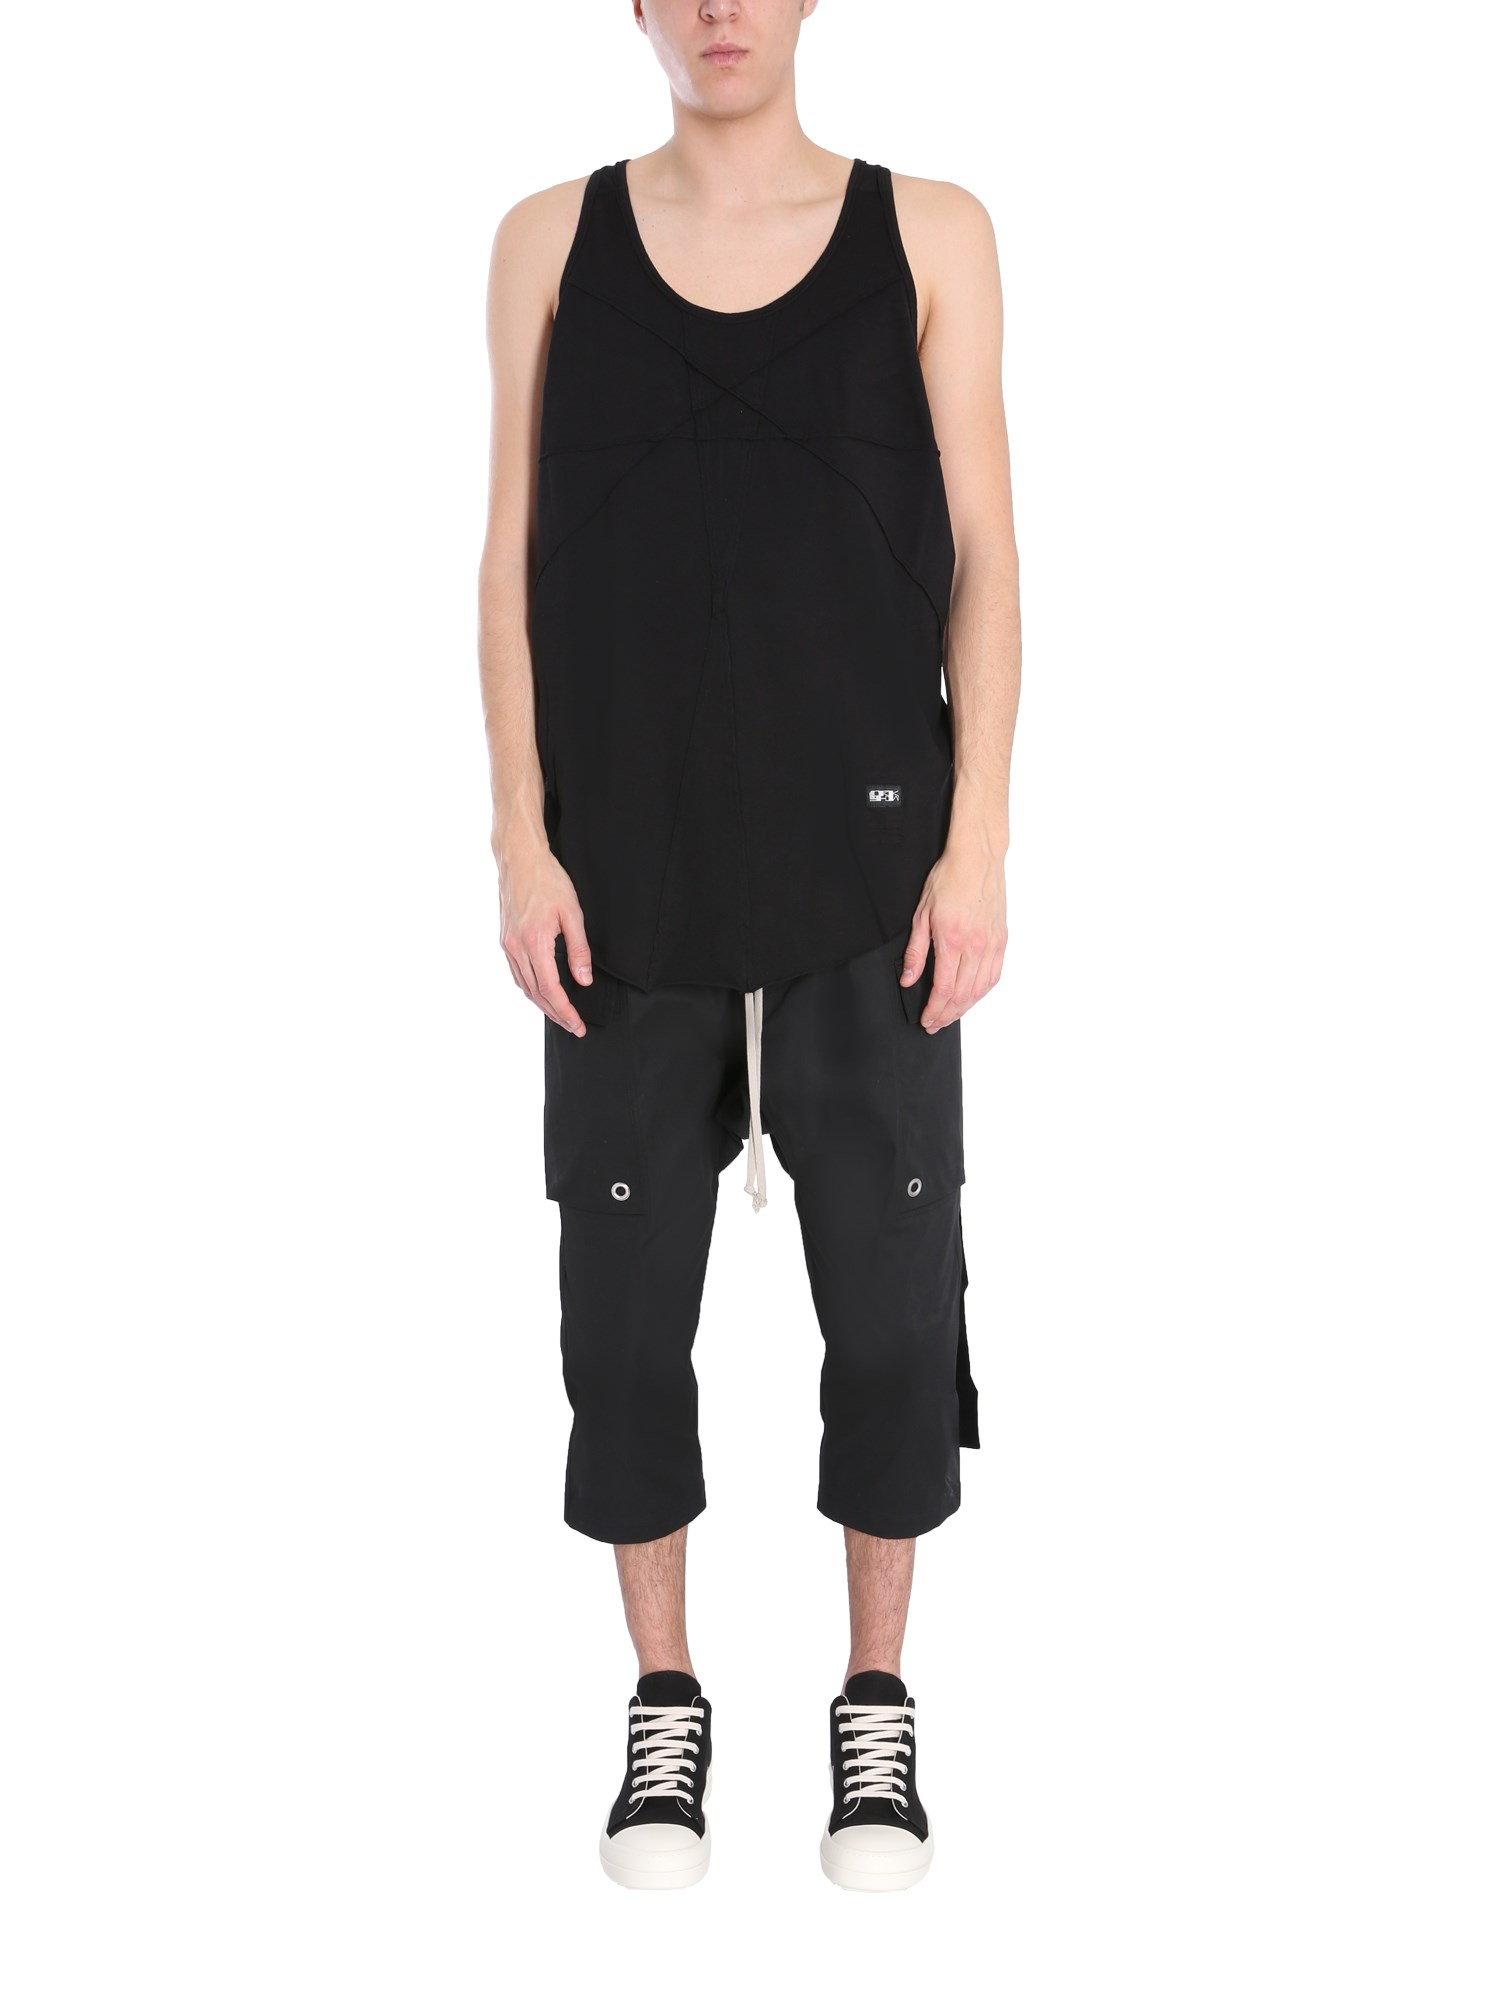 Rick Owens Drkshdw Clothing TANK TOP WITH RIBBON